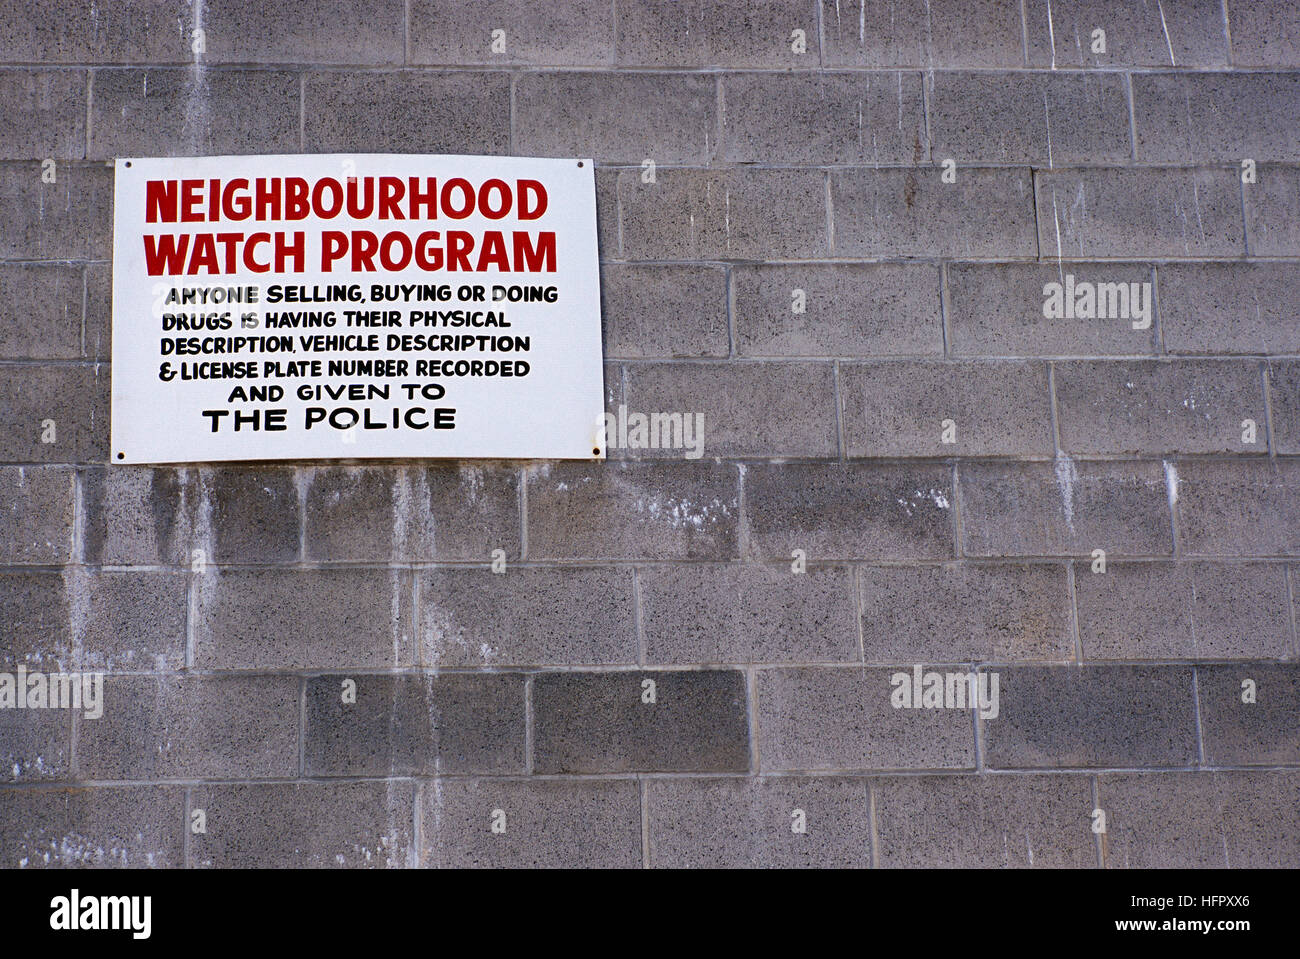 Neighbourhood Watch Program - Warning Sign to Anyone Selling, Buying or Doing Drugs will be reported to Police, - Stock Image